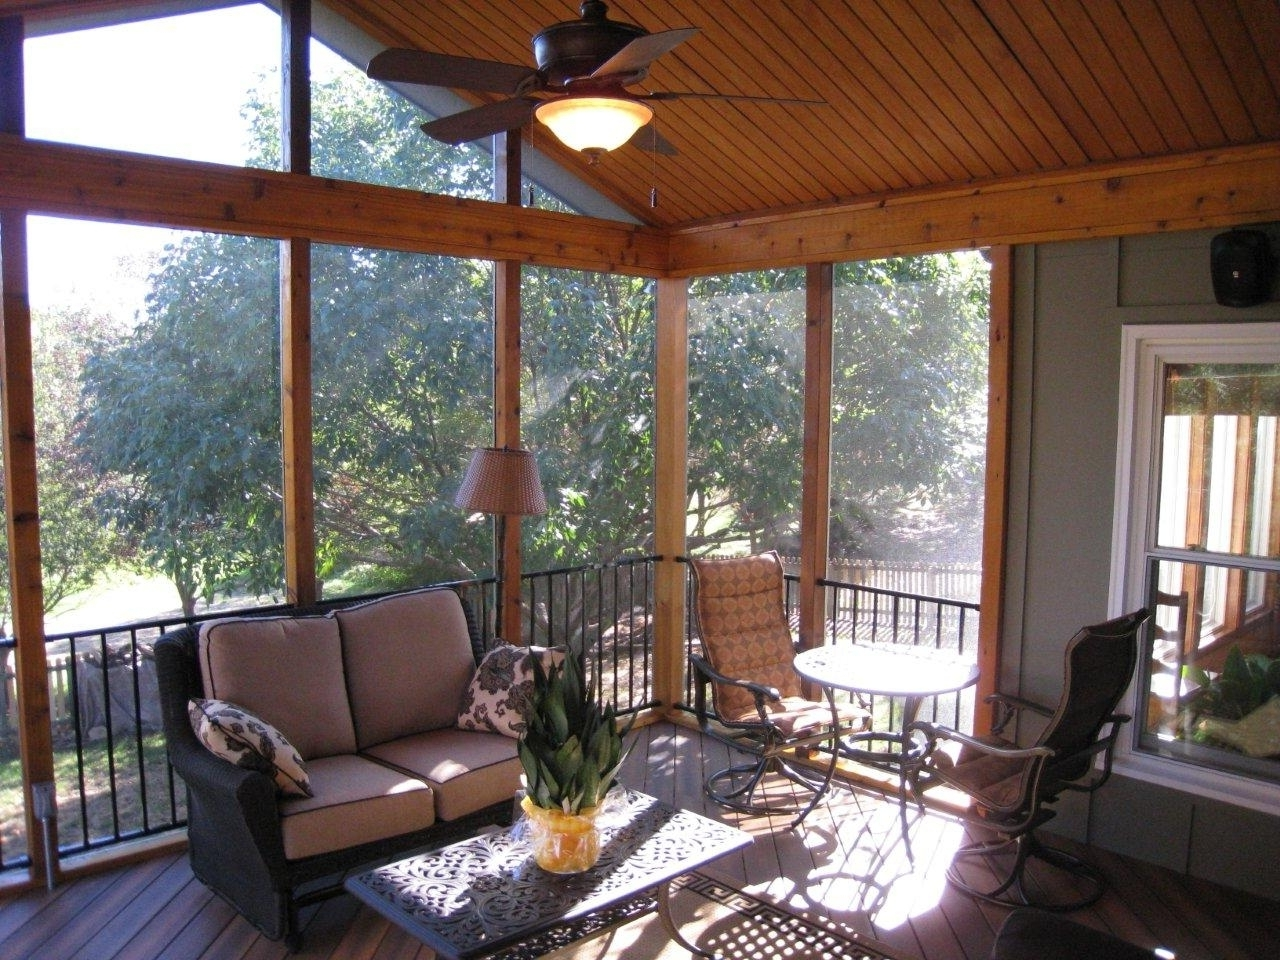 Fashionable Screen Porch Ceiling Fans With Regard To Outdoor Ceiling Fans For Screened Porches (View 7 of 20)